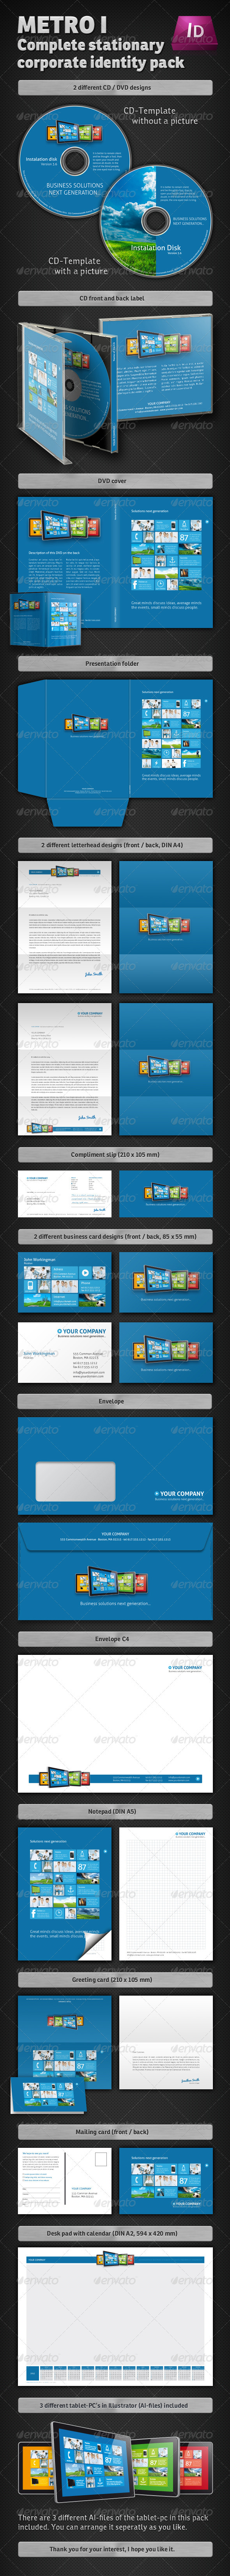 GraphicRiver Metro I Corporate Identity Stationary Pack 1959666